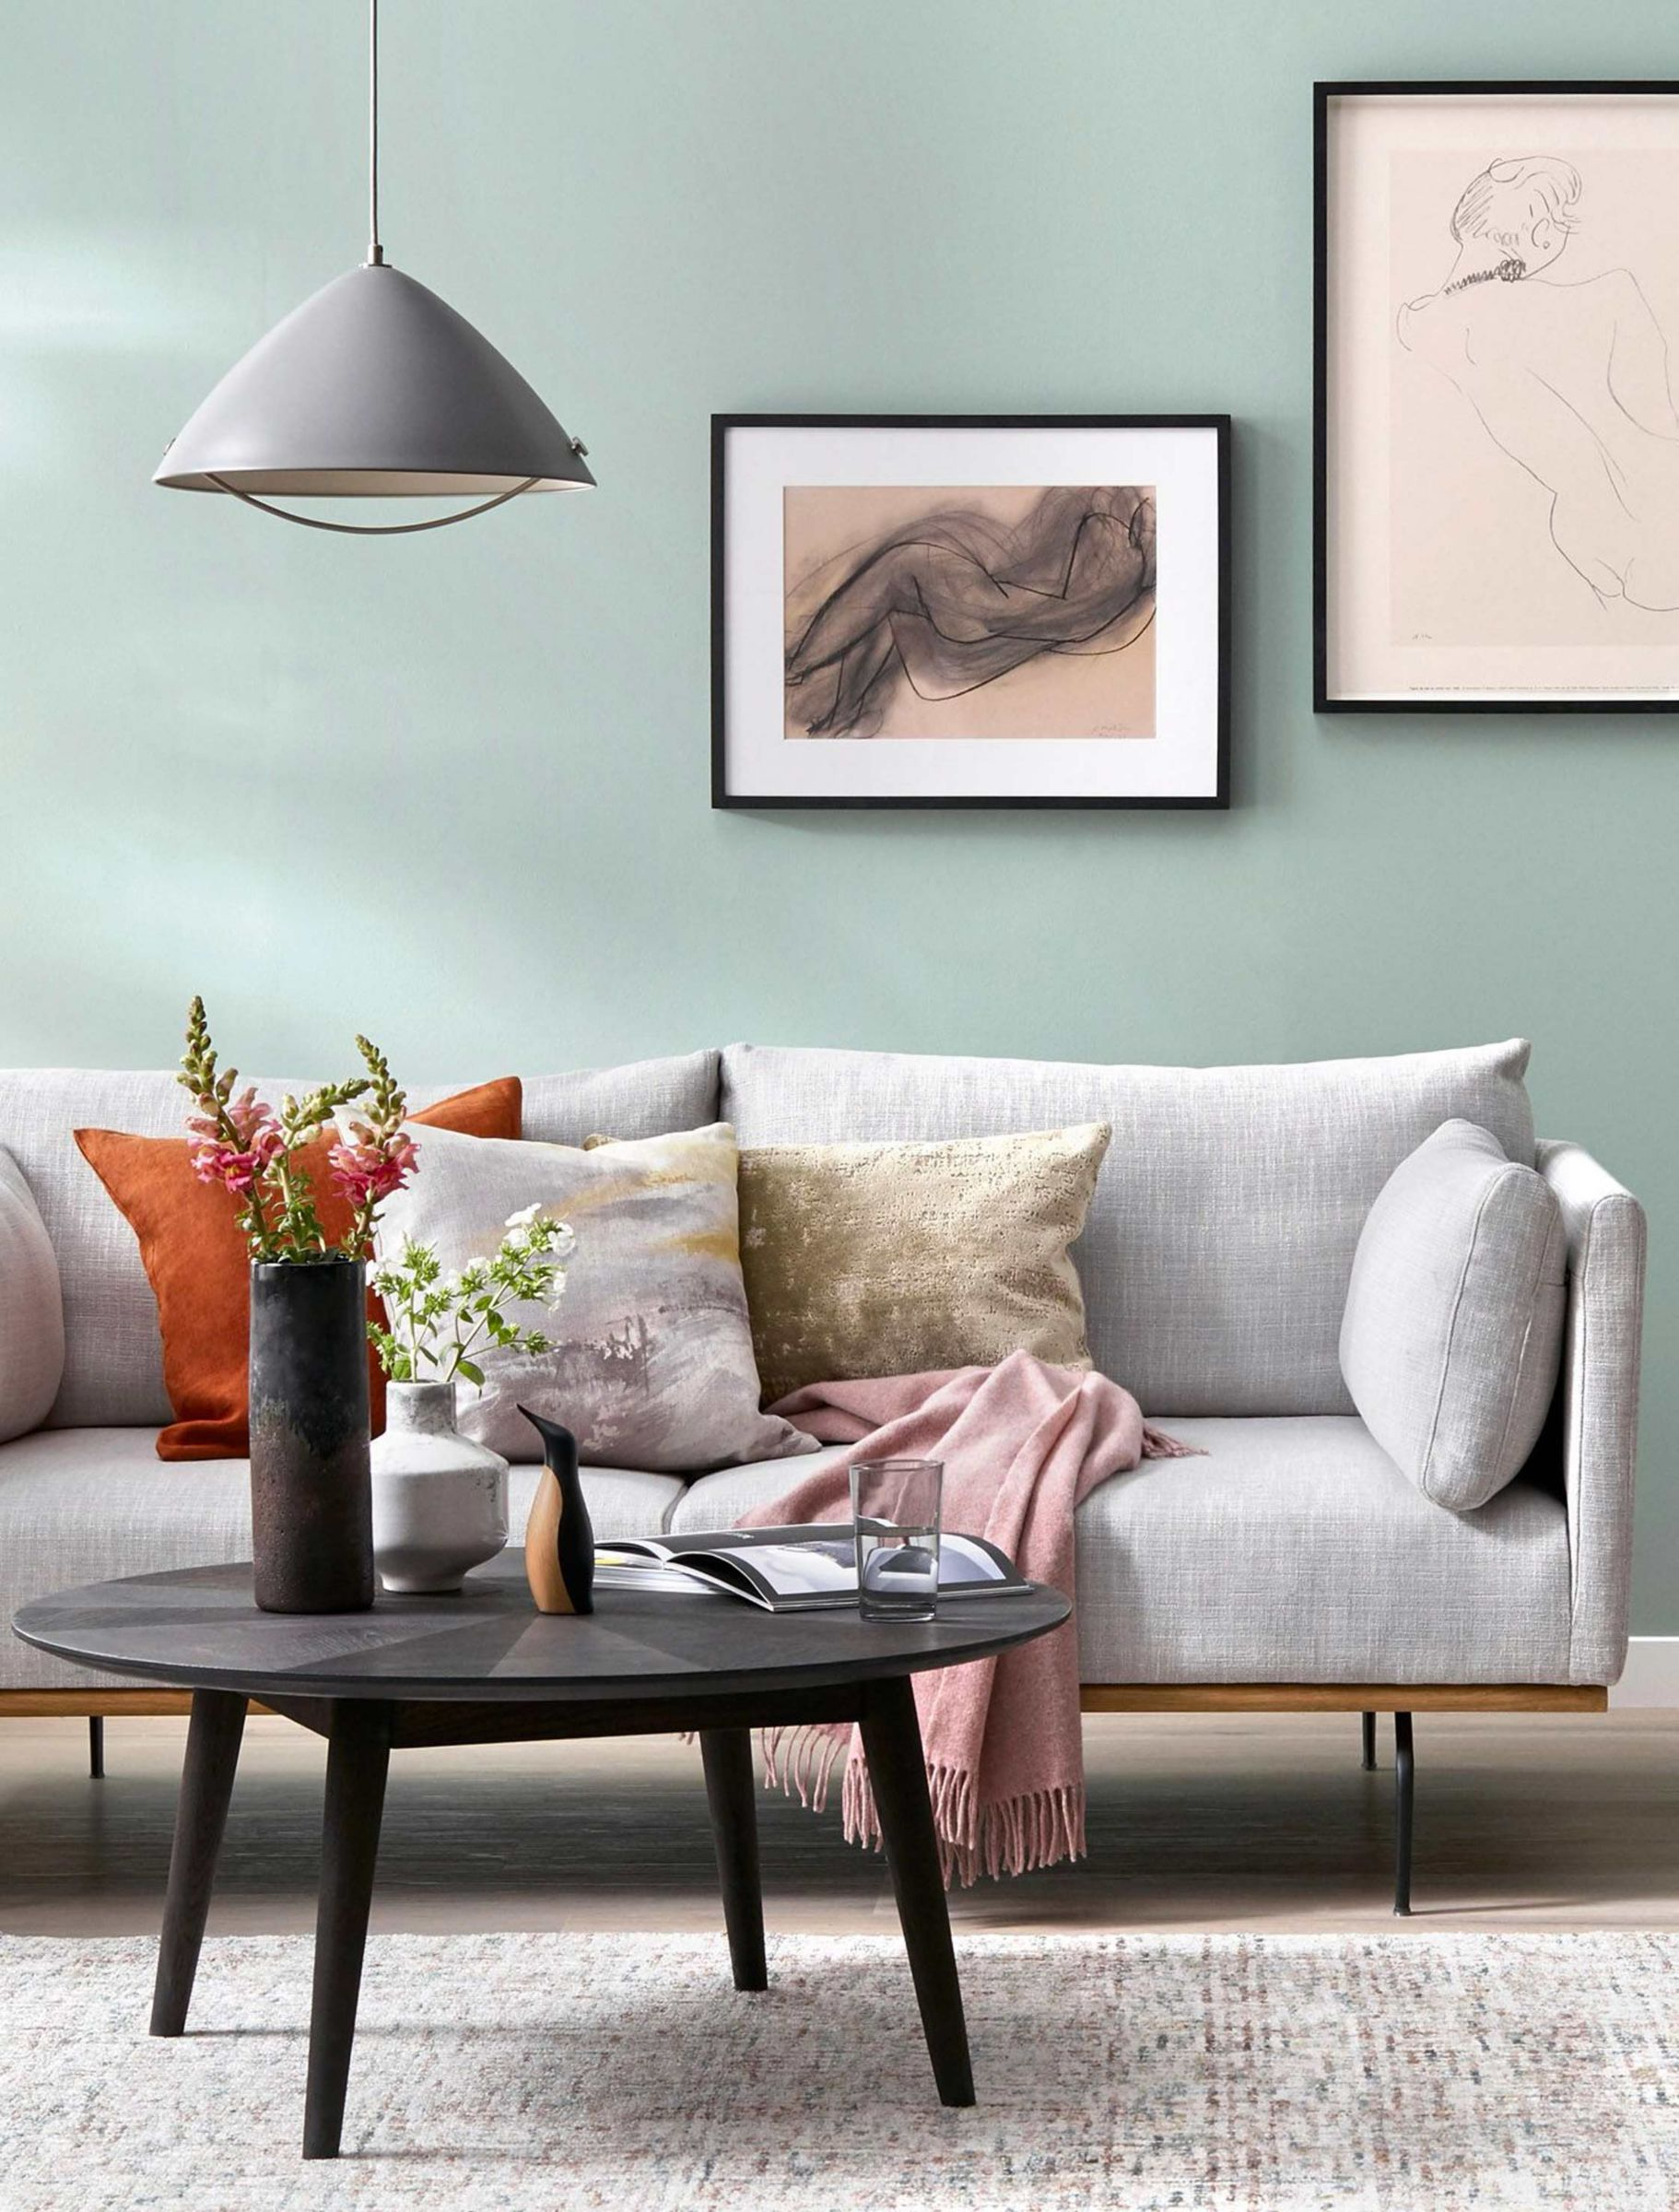 Stylish living room, with on-trend accessories and assortment of accessories